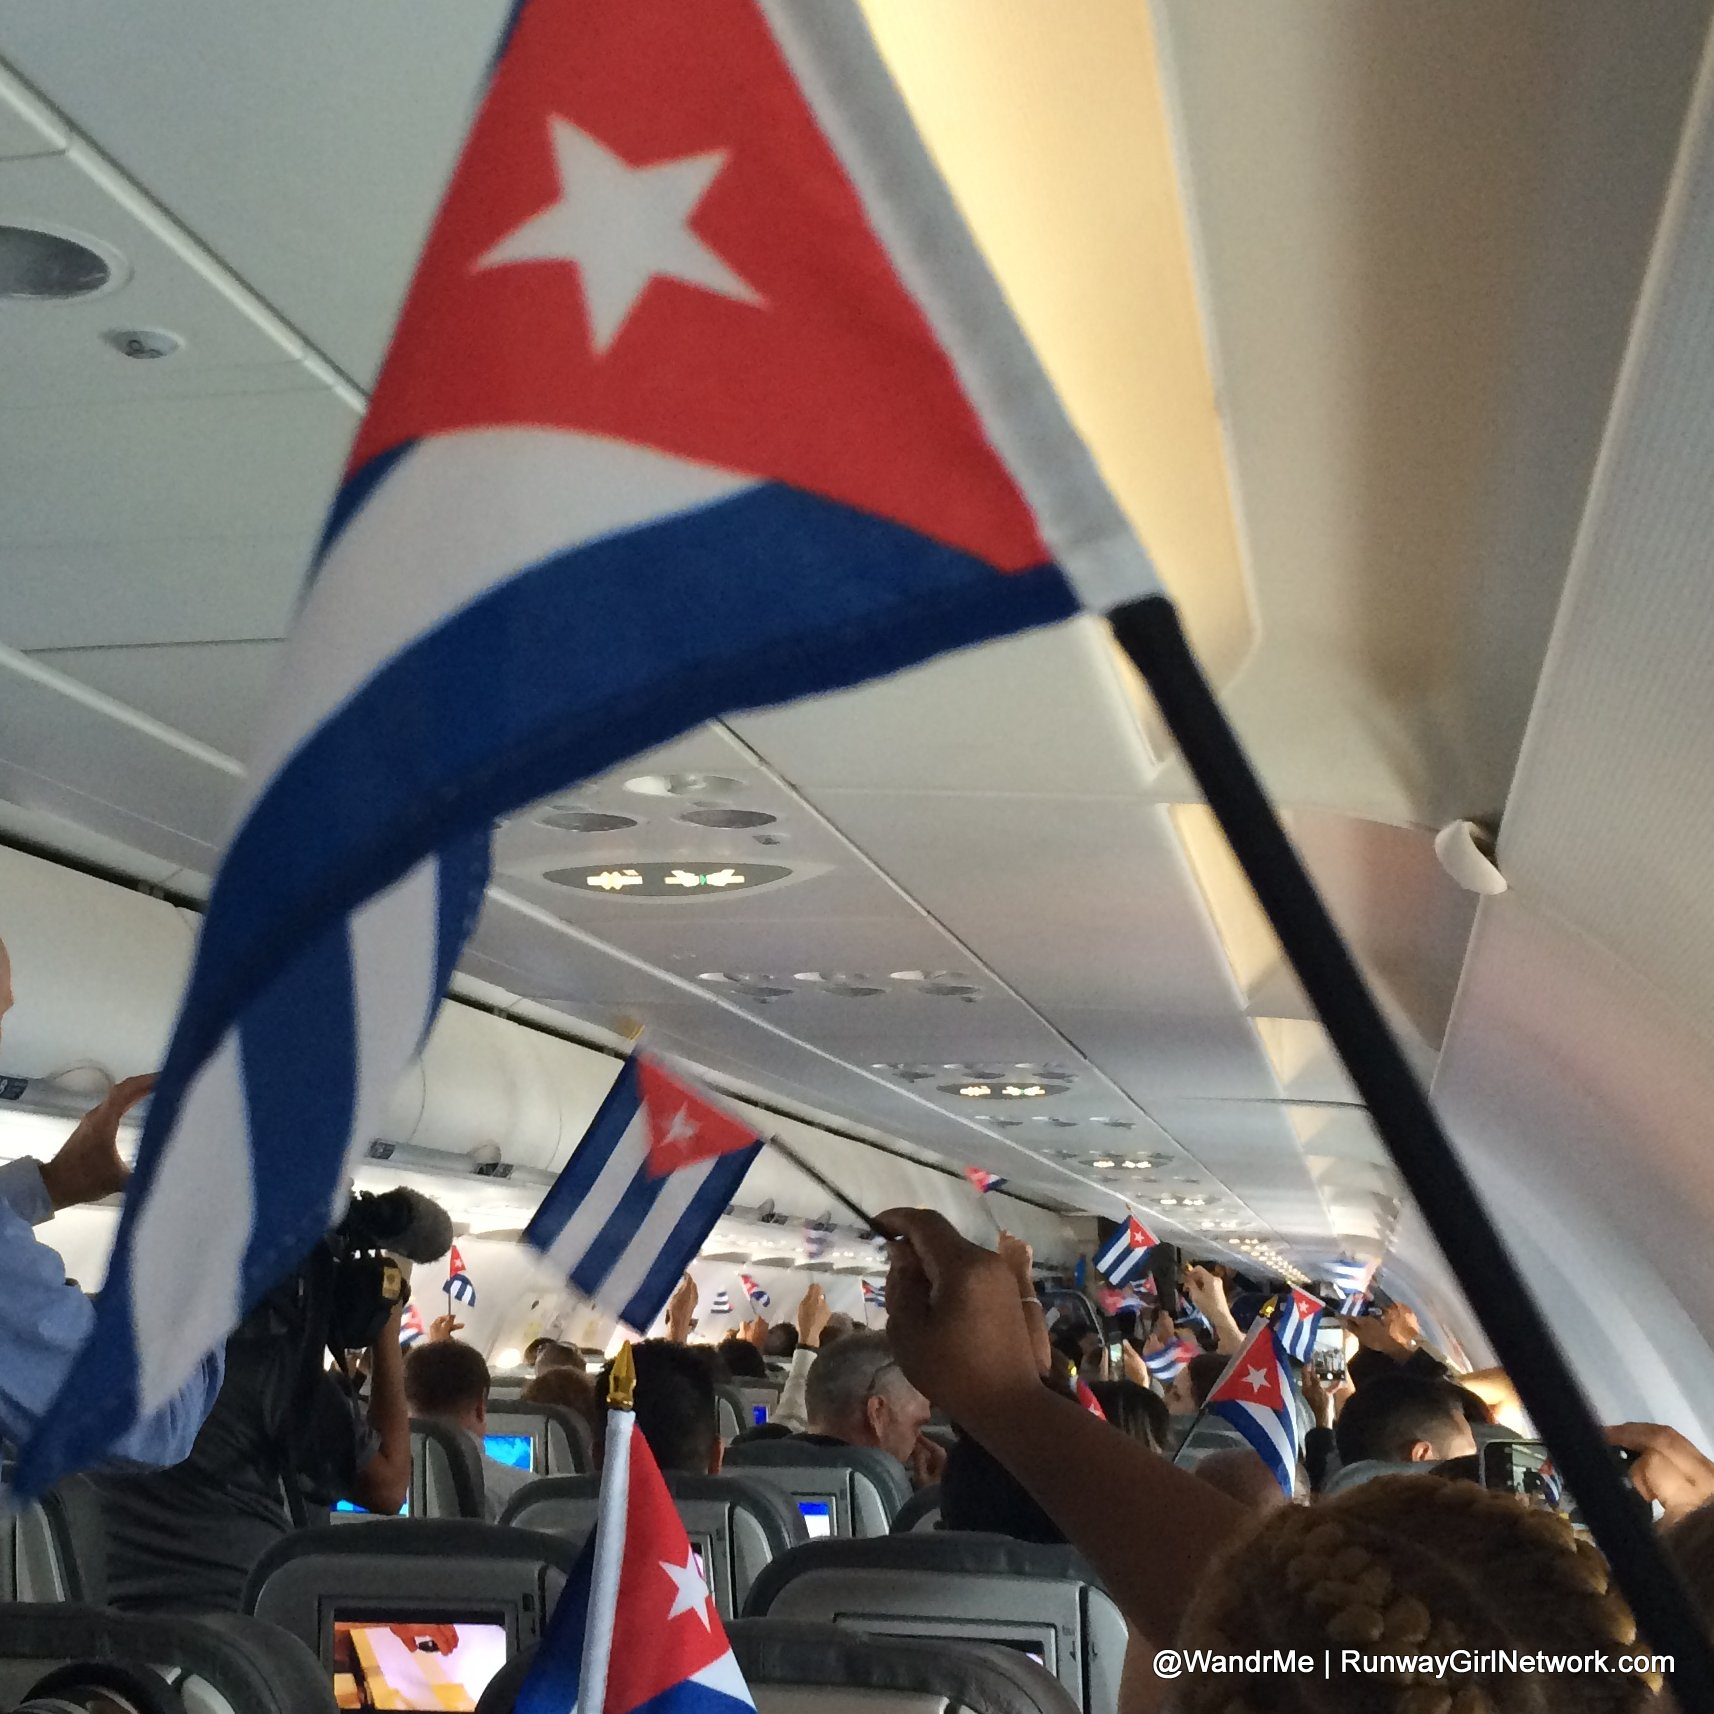 Cuban flags waved as we touched down in Santa Clara with JetBlue bringing the restoration of commercial service between the US and Cuba